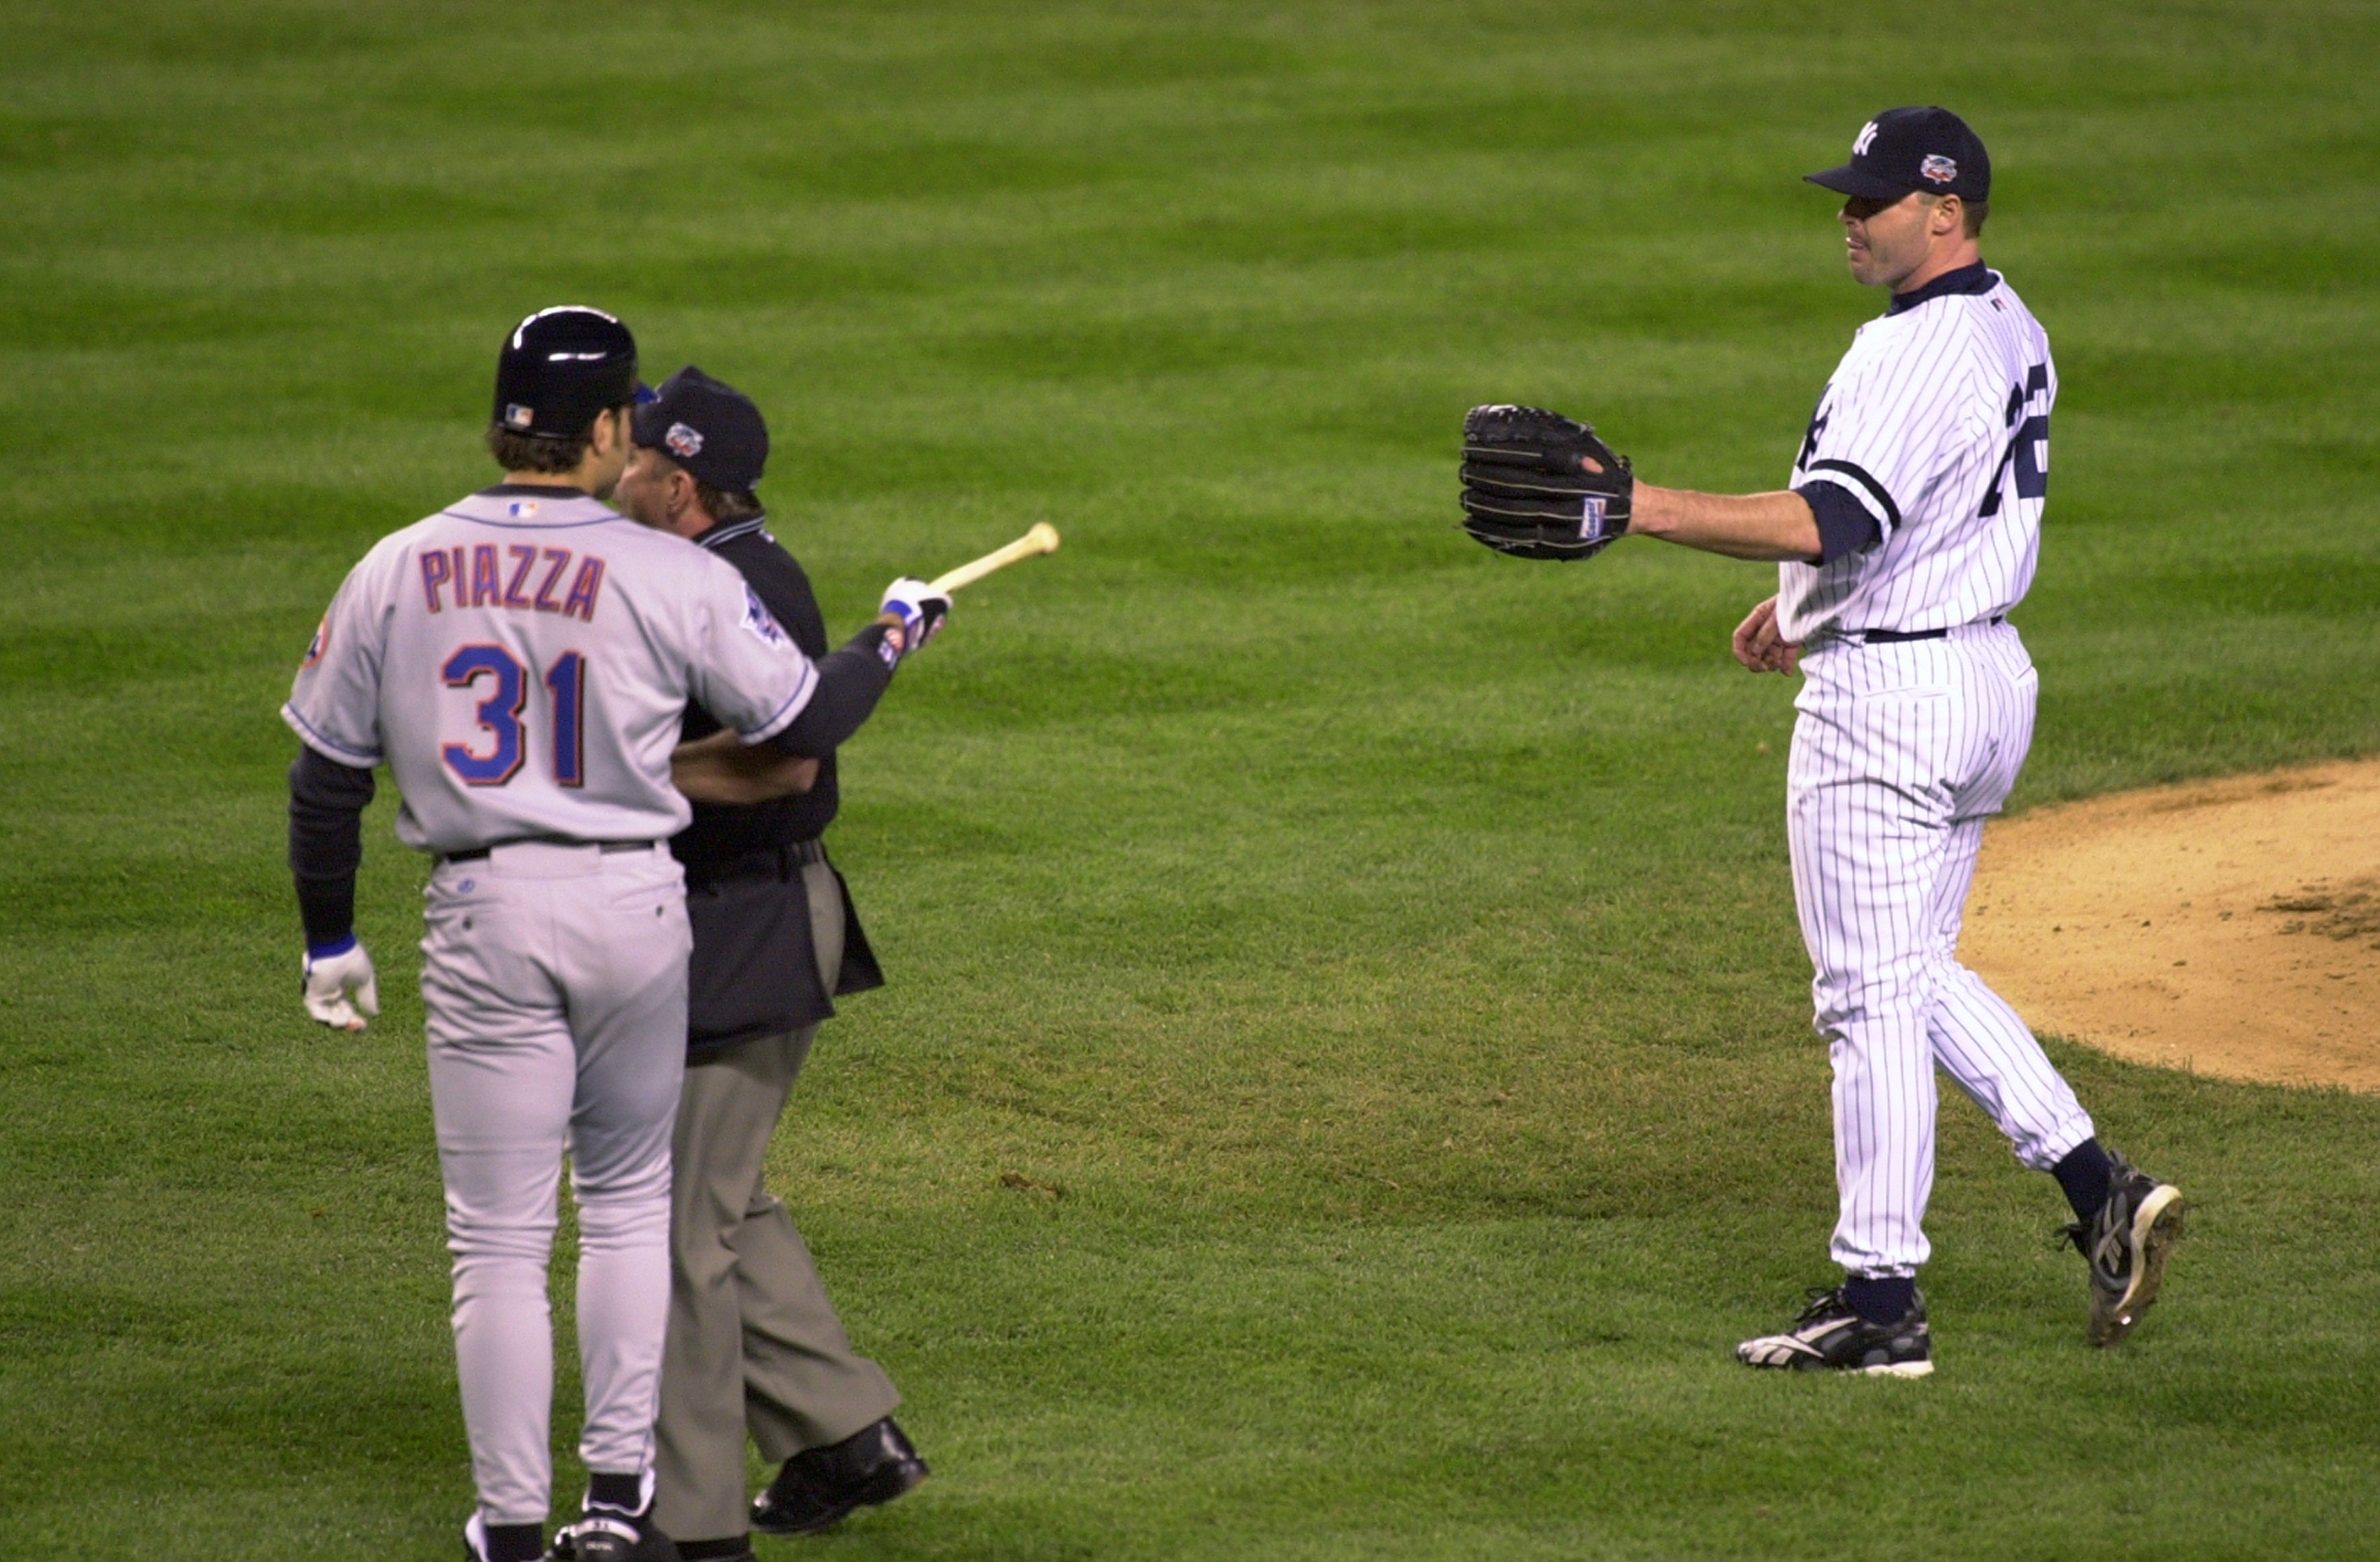 2000 Subway World Series Yankees vs Mets